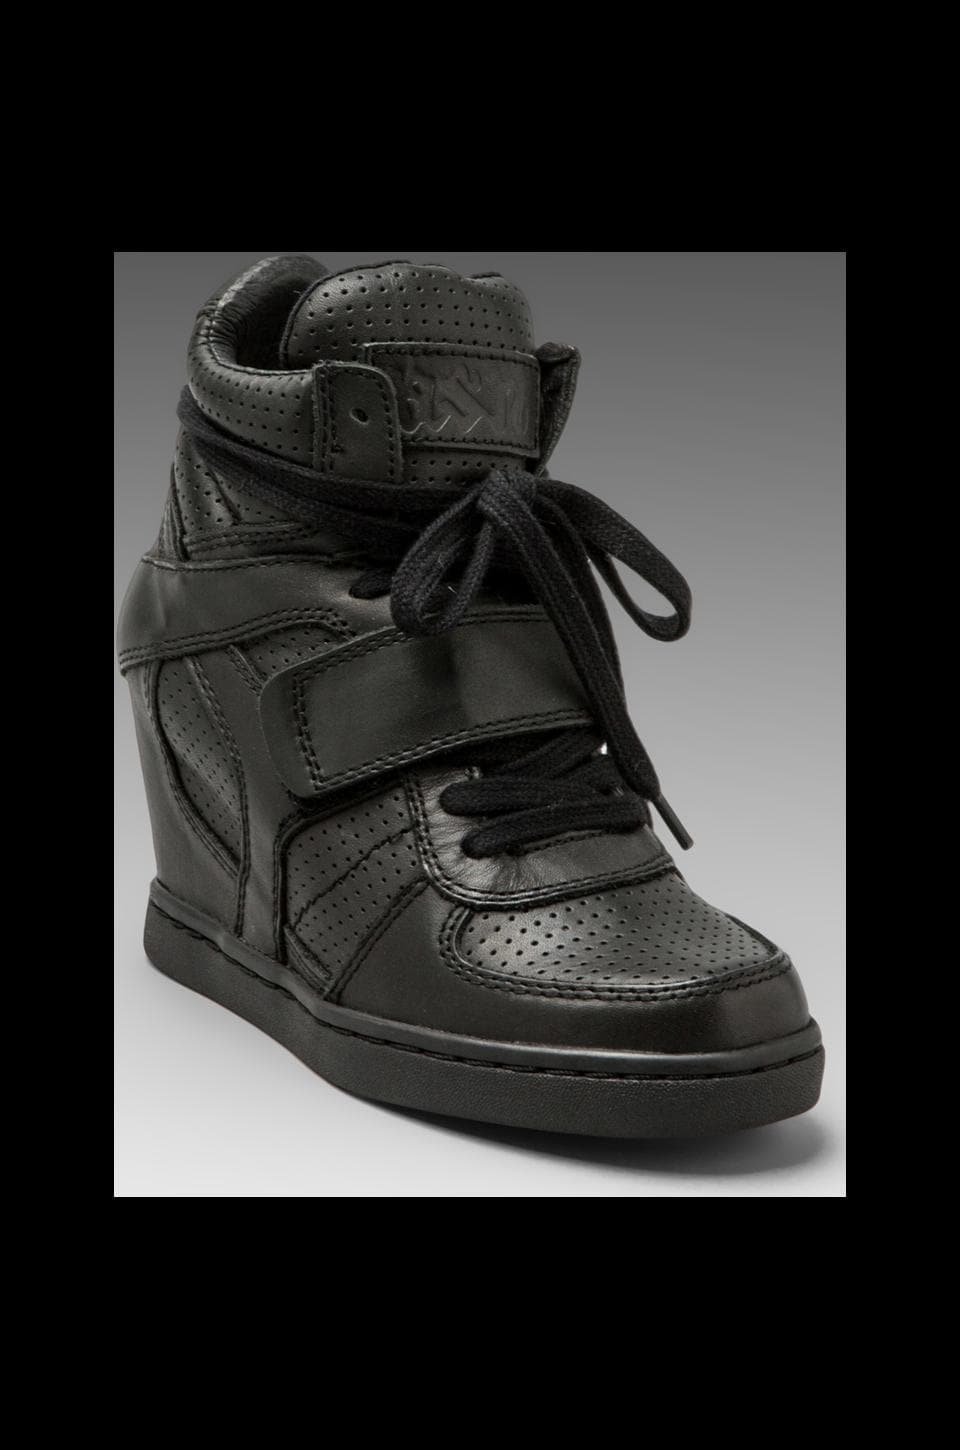 Ash Cool Wedge Sneaker in Black All Vintage Metal